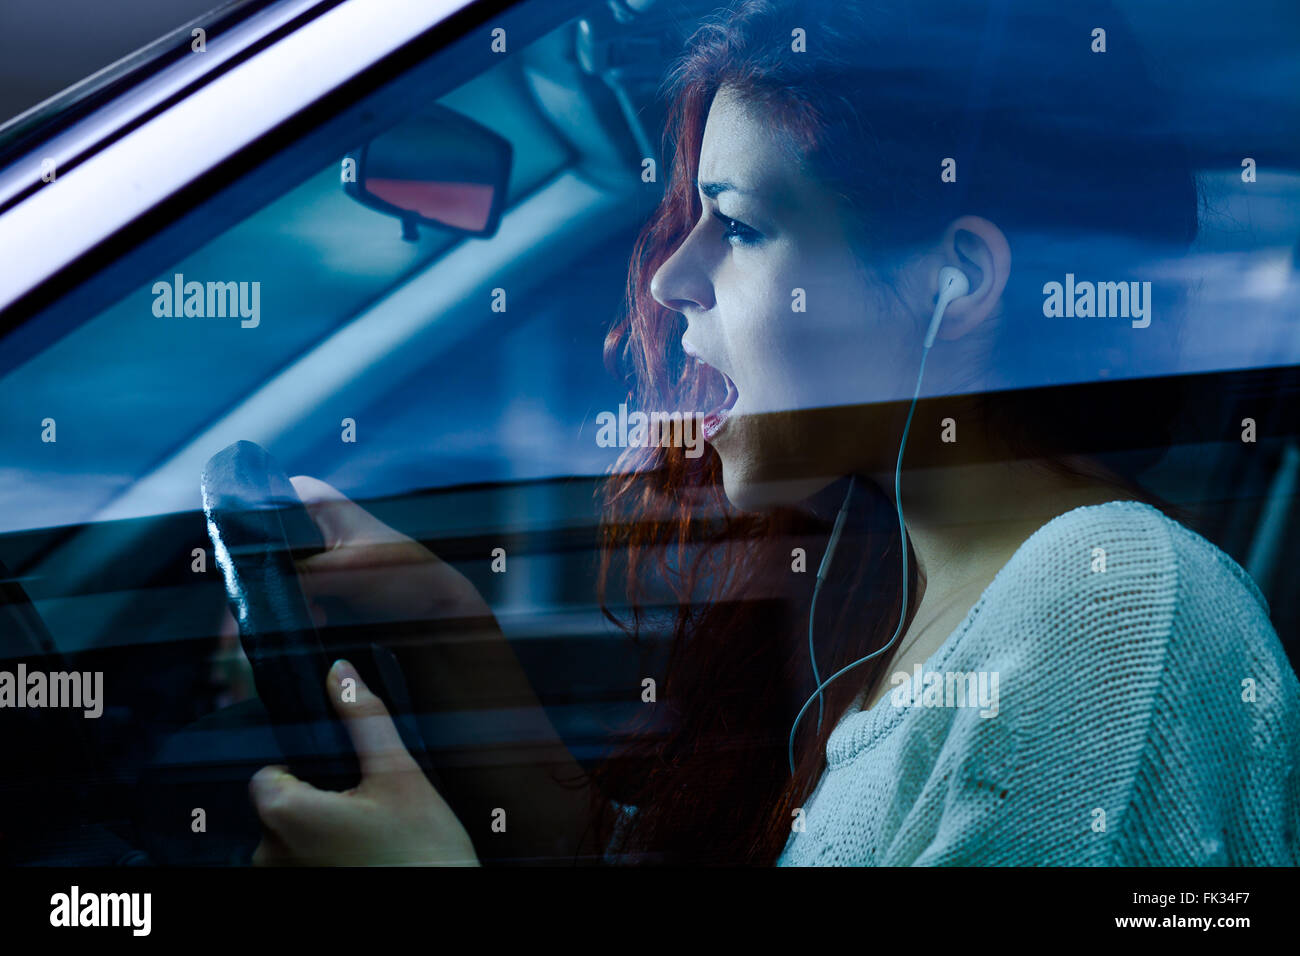 Screaming Woman with Earbuds Driving a Car - Stock Image